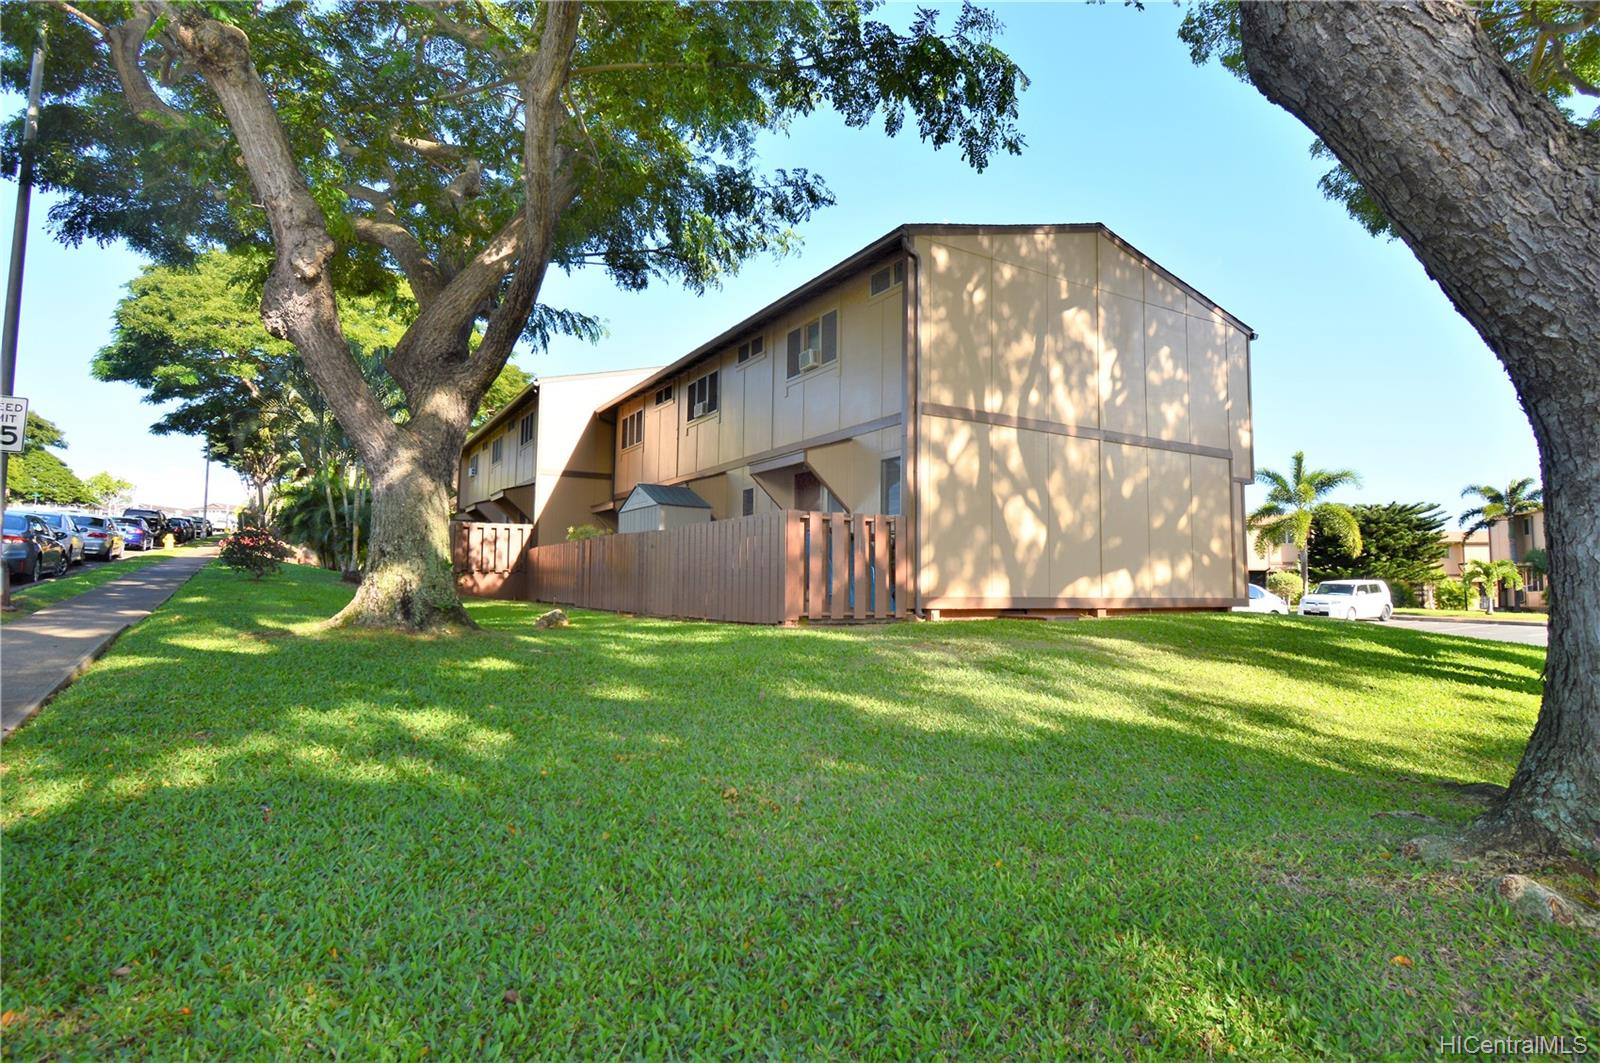 98-1397 Hinu Place townhouse # D, Pearl City, Hawaii - photo 25 of 25